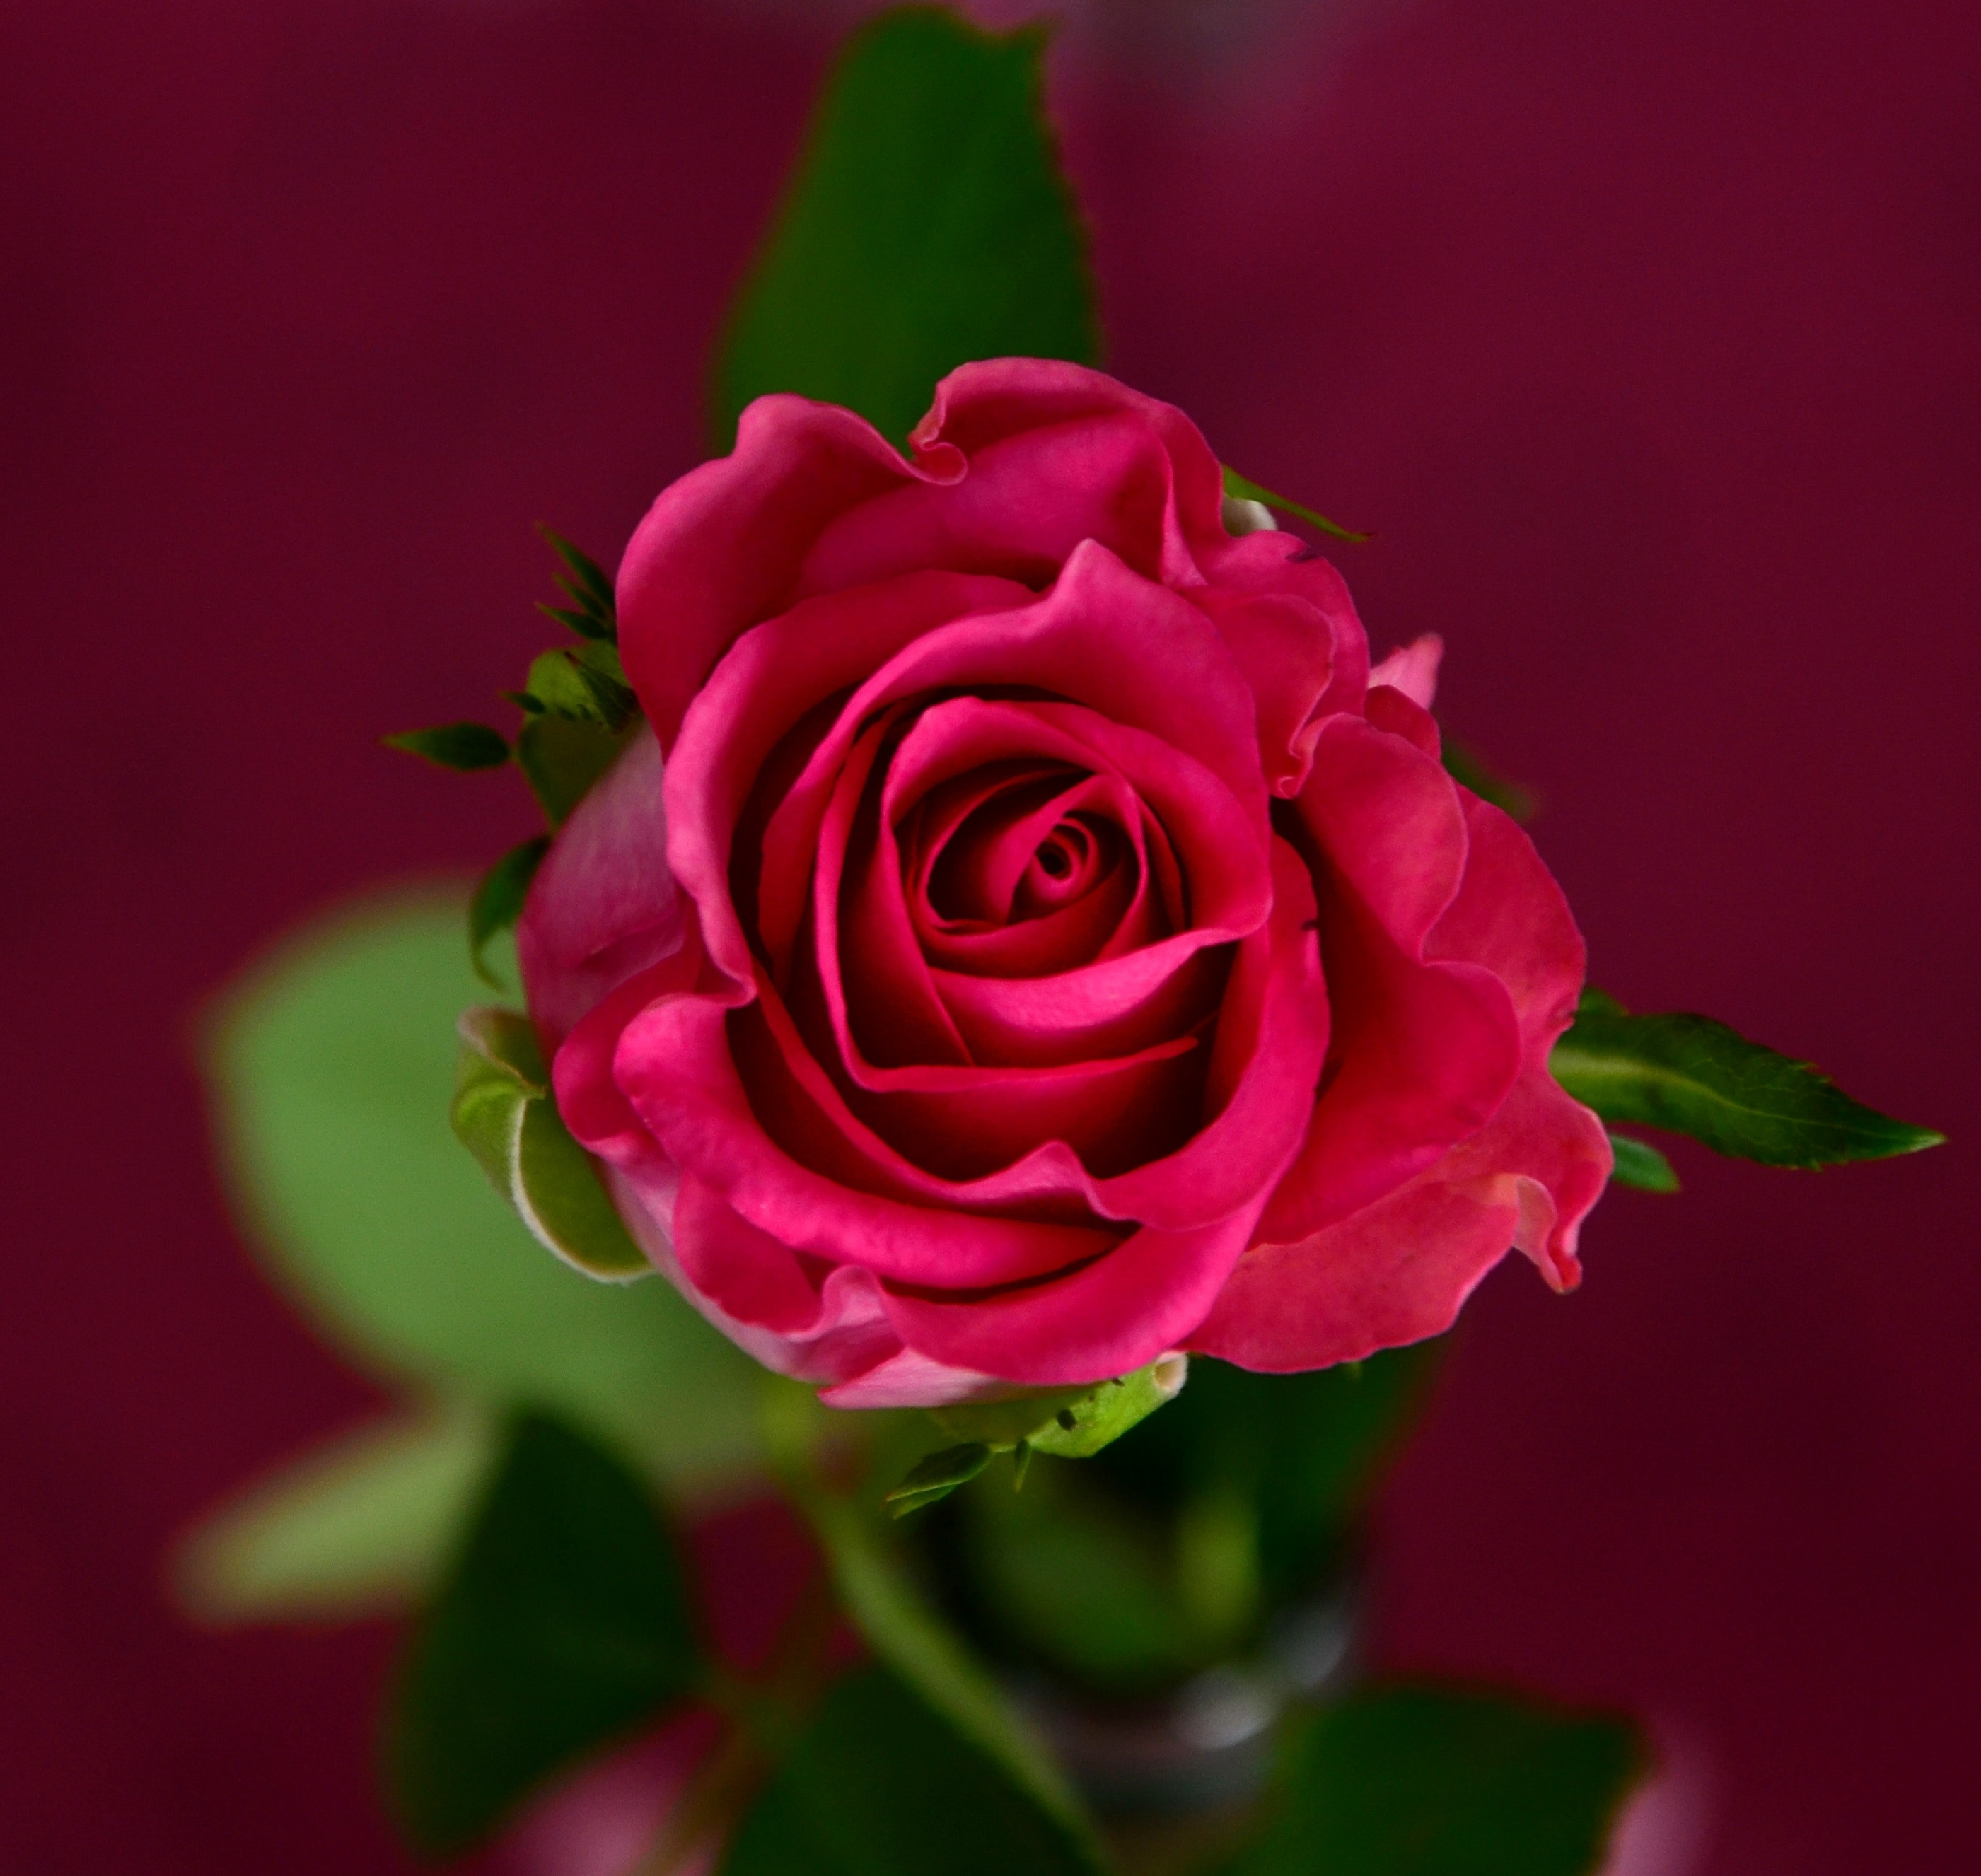 Browse through the best pictures of red roses. Download all pictures for free and use all red rose images for commercial use as you wish.